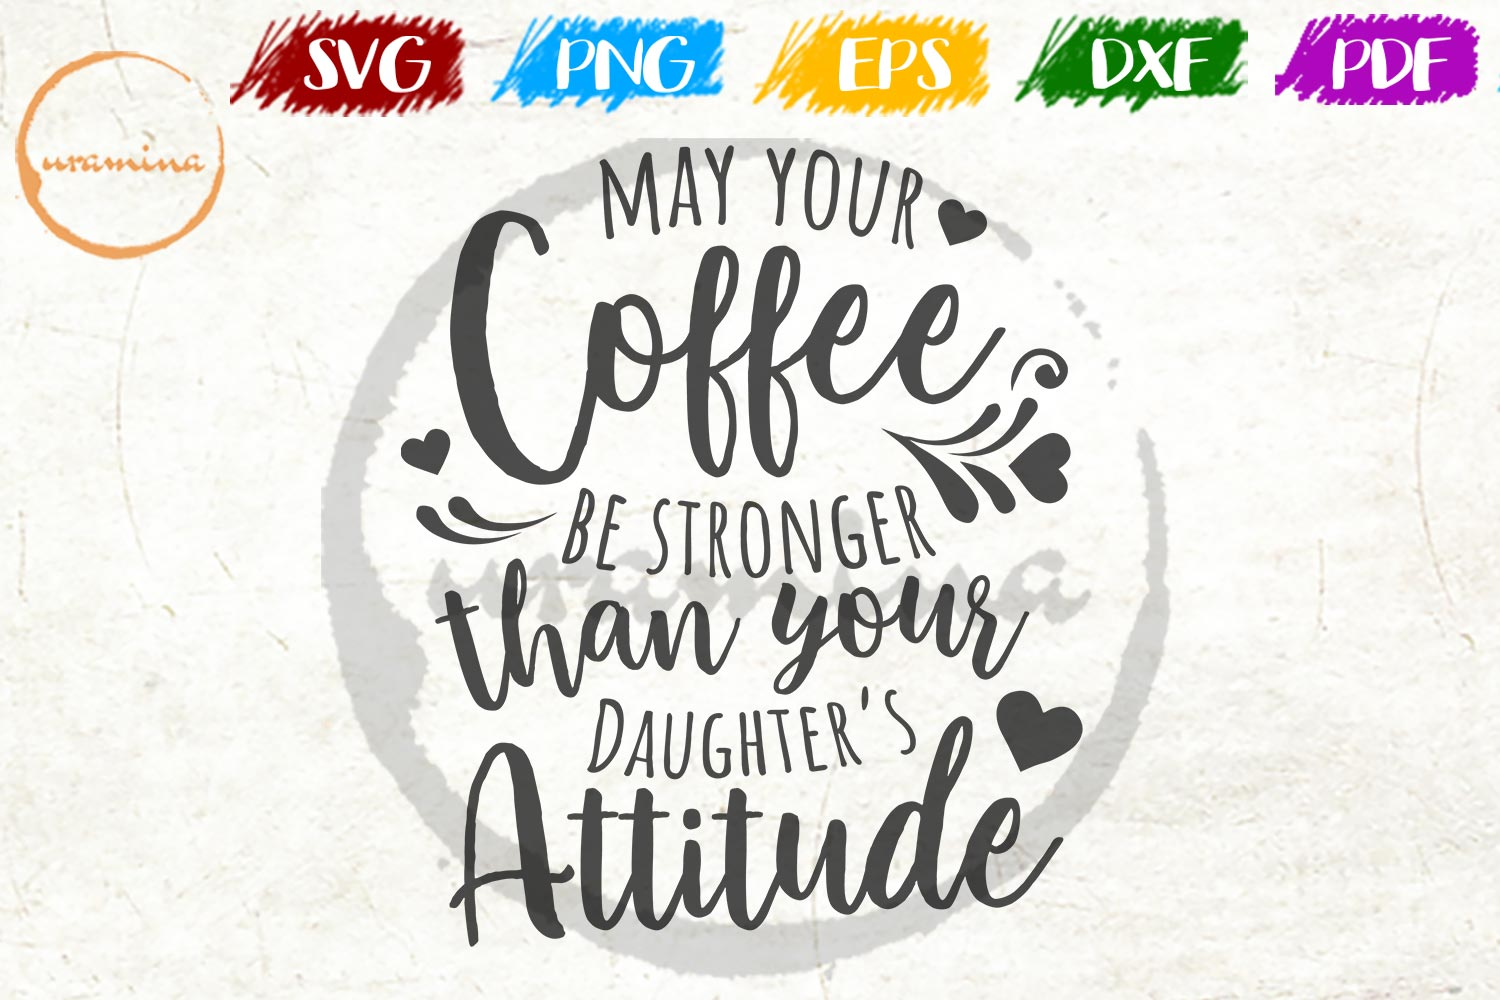 Download Free May Your Coffee Be Stronger Graphic By Uramina Creative Fabrica for Cricut Explore, Silhouette and other cutting machines.